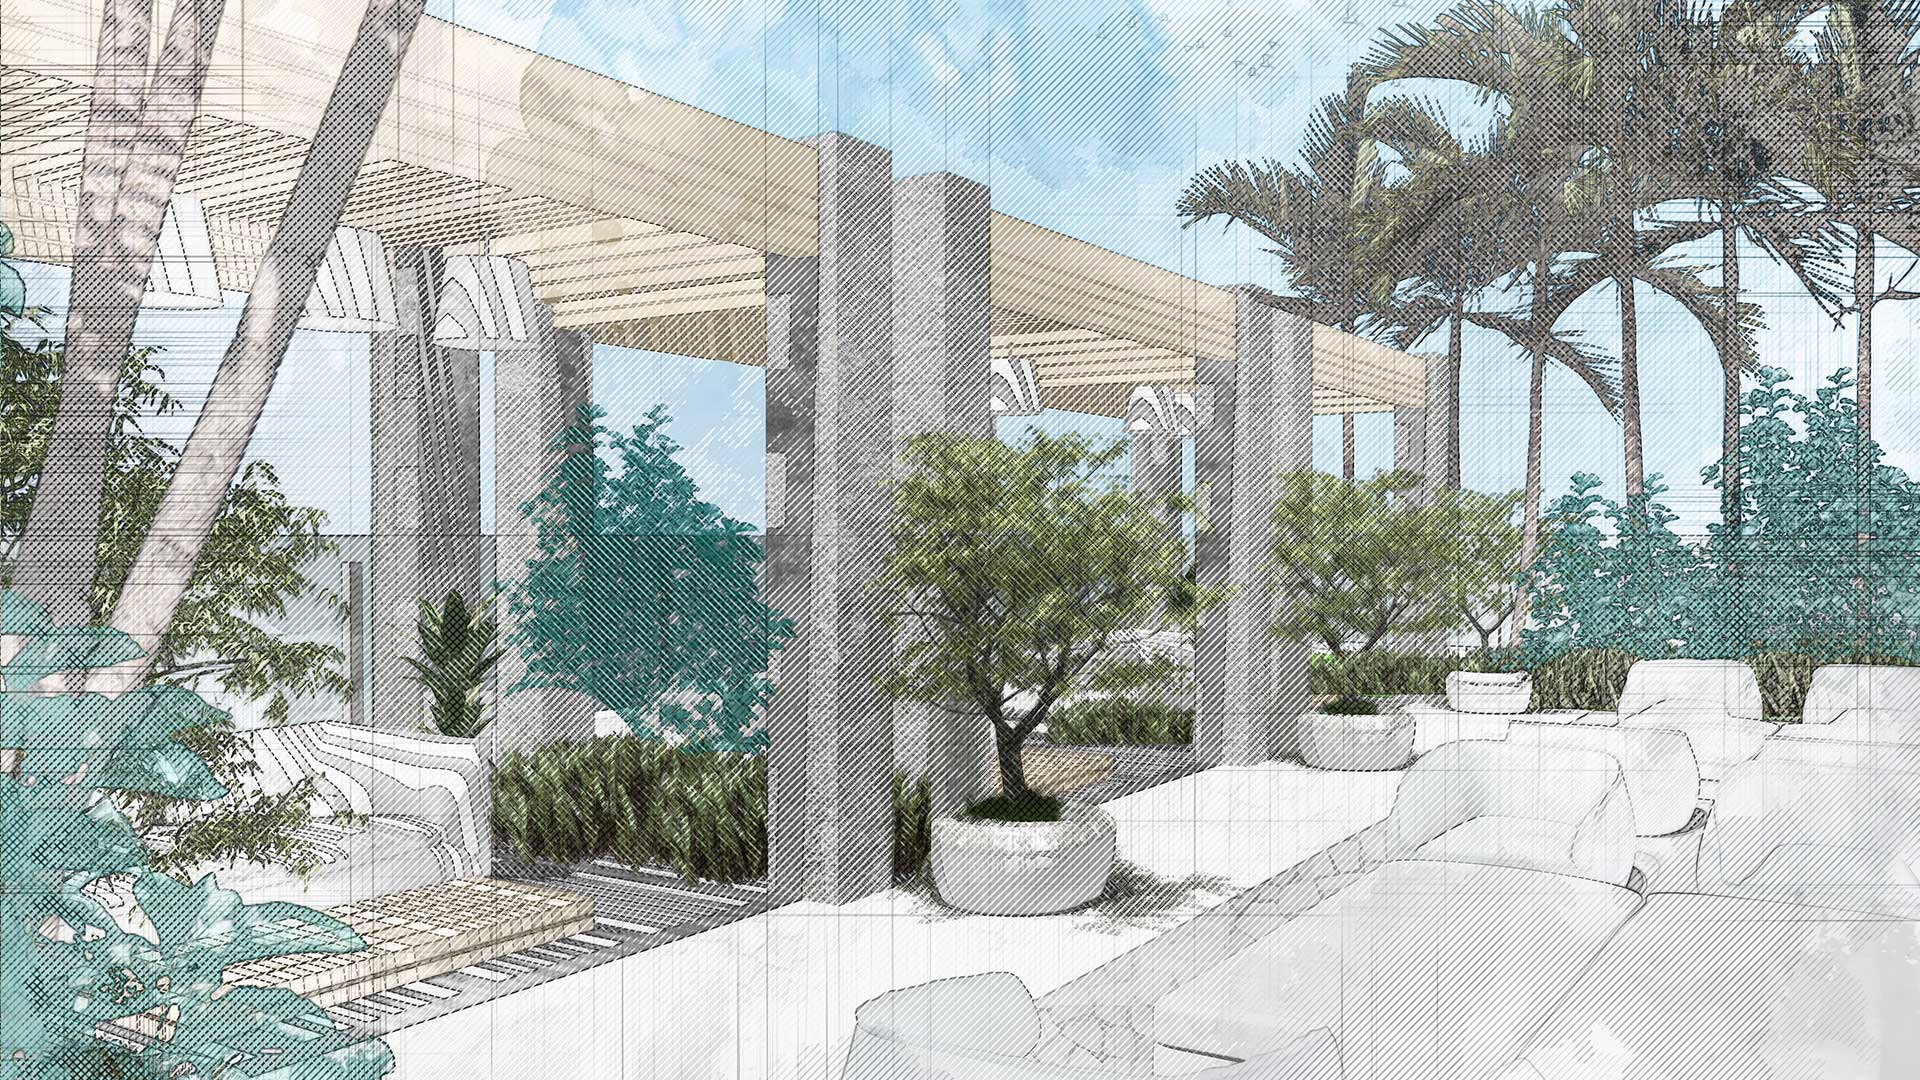 Sketching of landscape design of 7140 Collins Garden showing lounge area surrounded by plants in front of a building